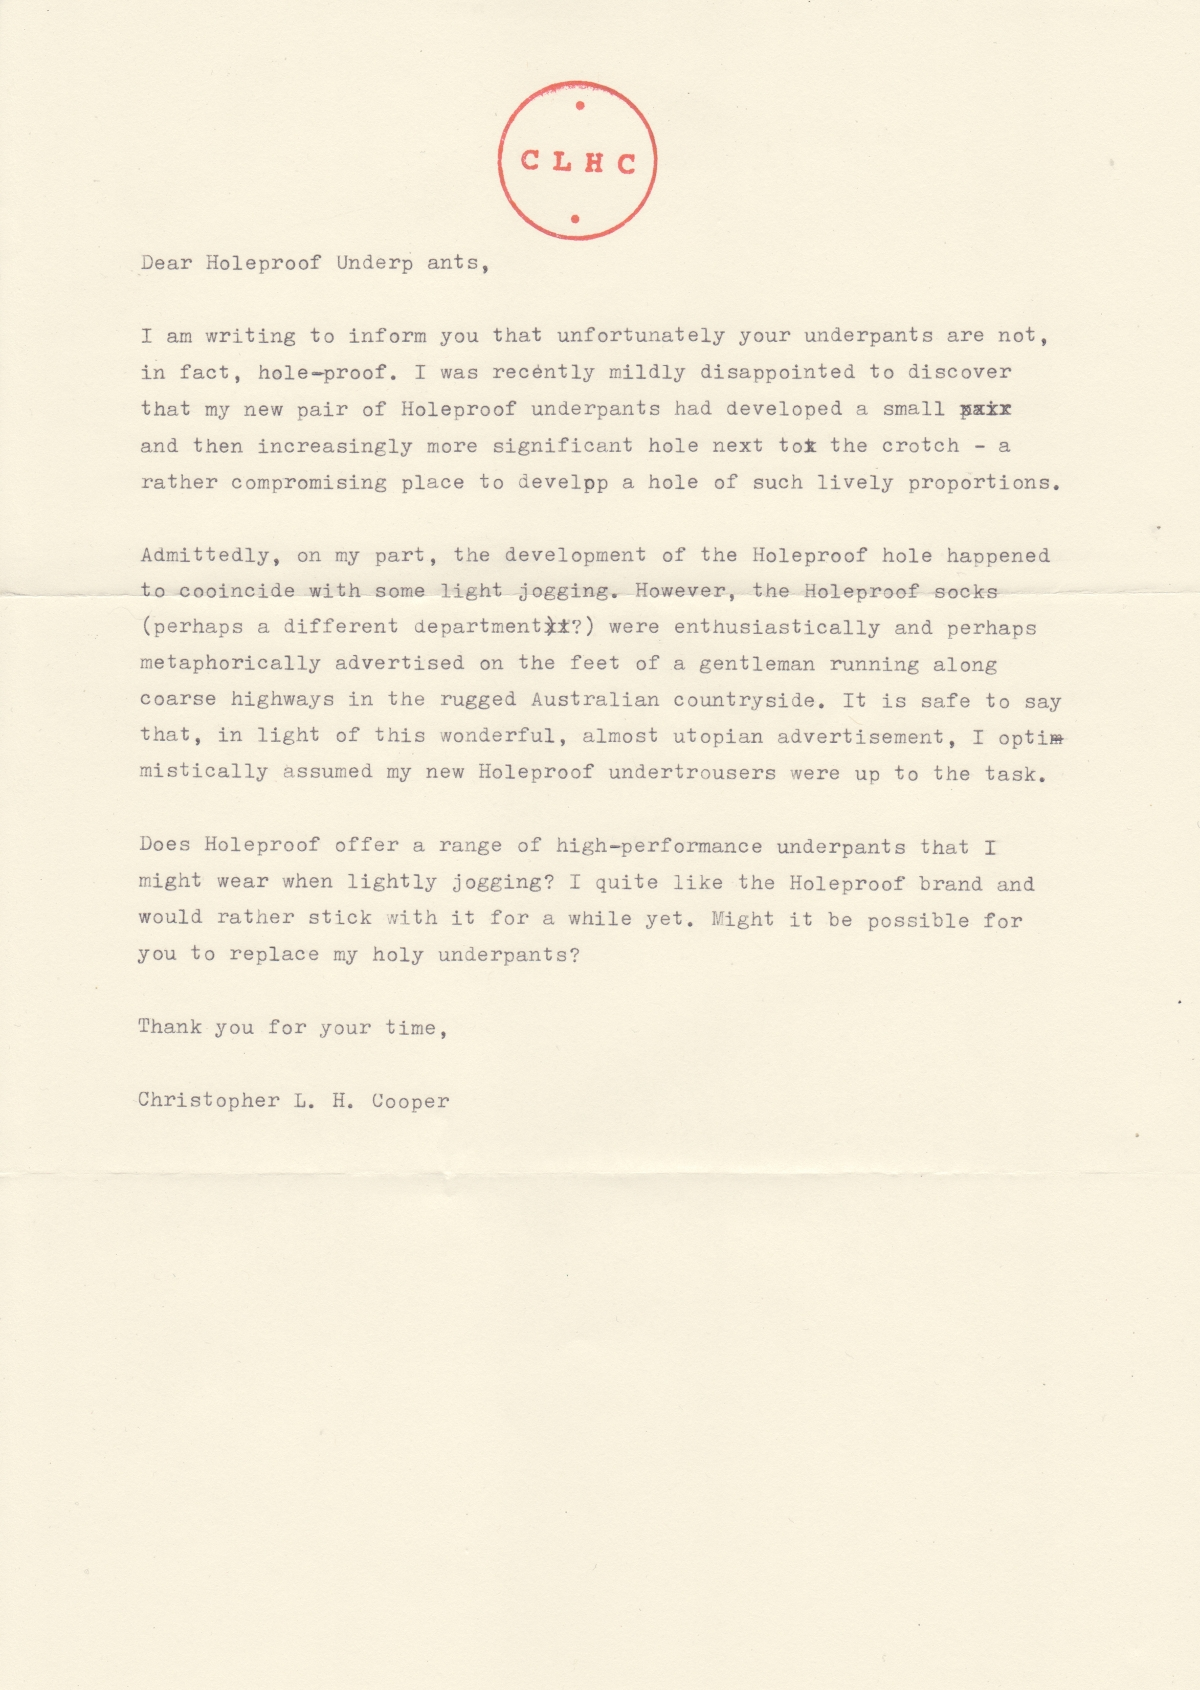 A letter from Christopher Cooper to Holeproof Underpants.